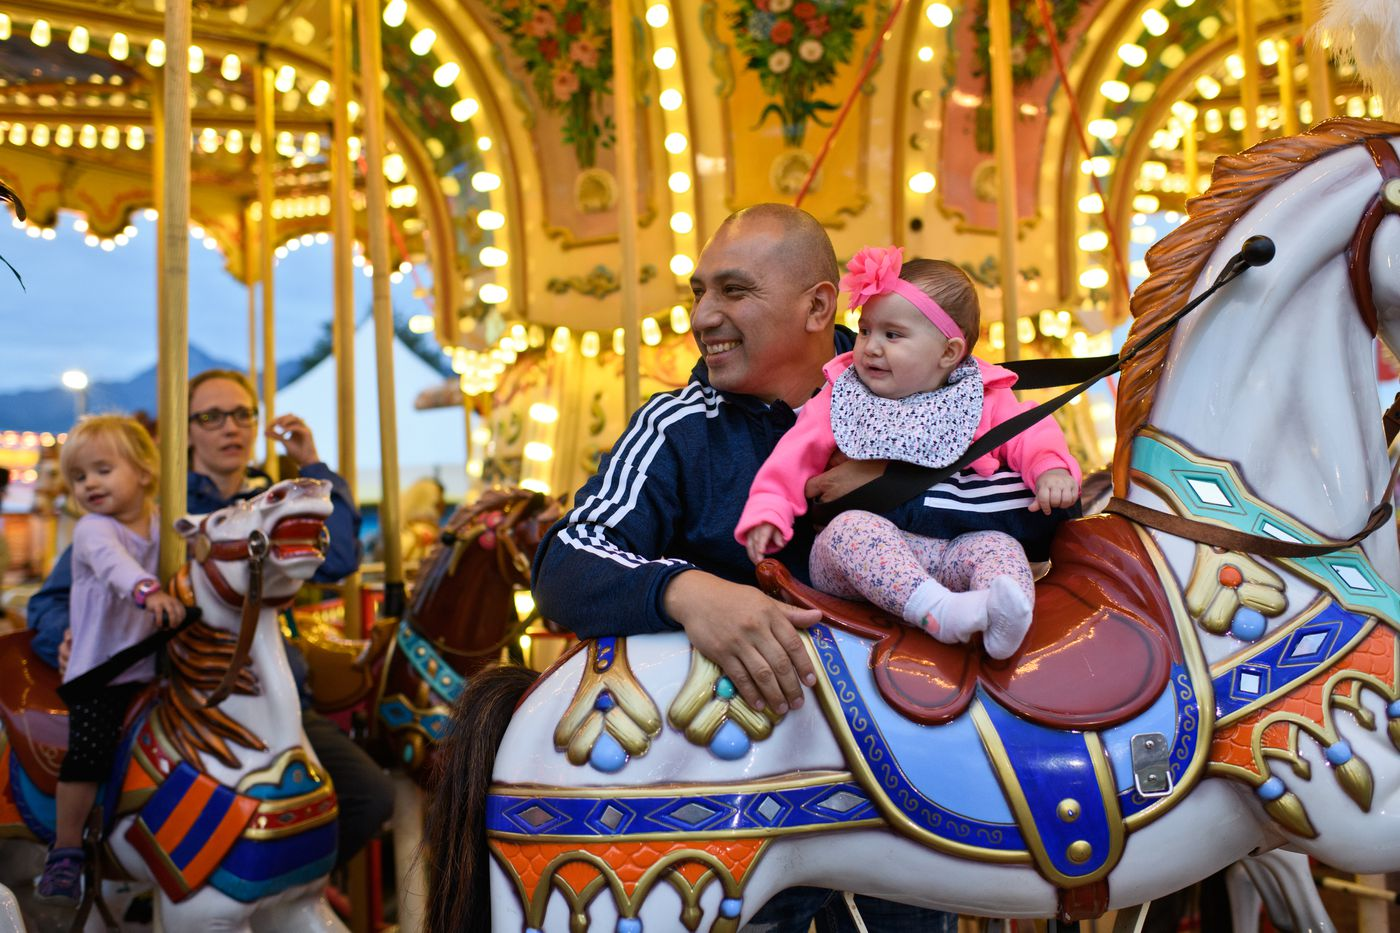 Riders enjoy the carousel at the Alaska State Fair on August 28, 2018. (Marc Lester / ADN)